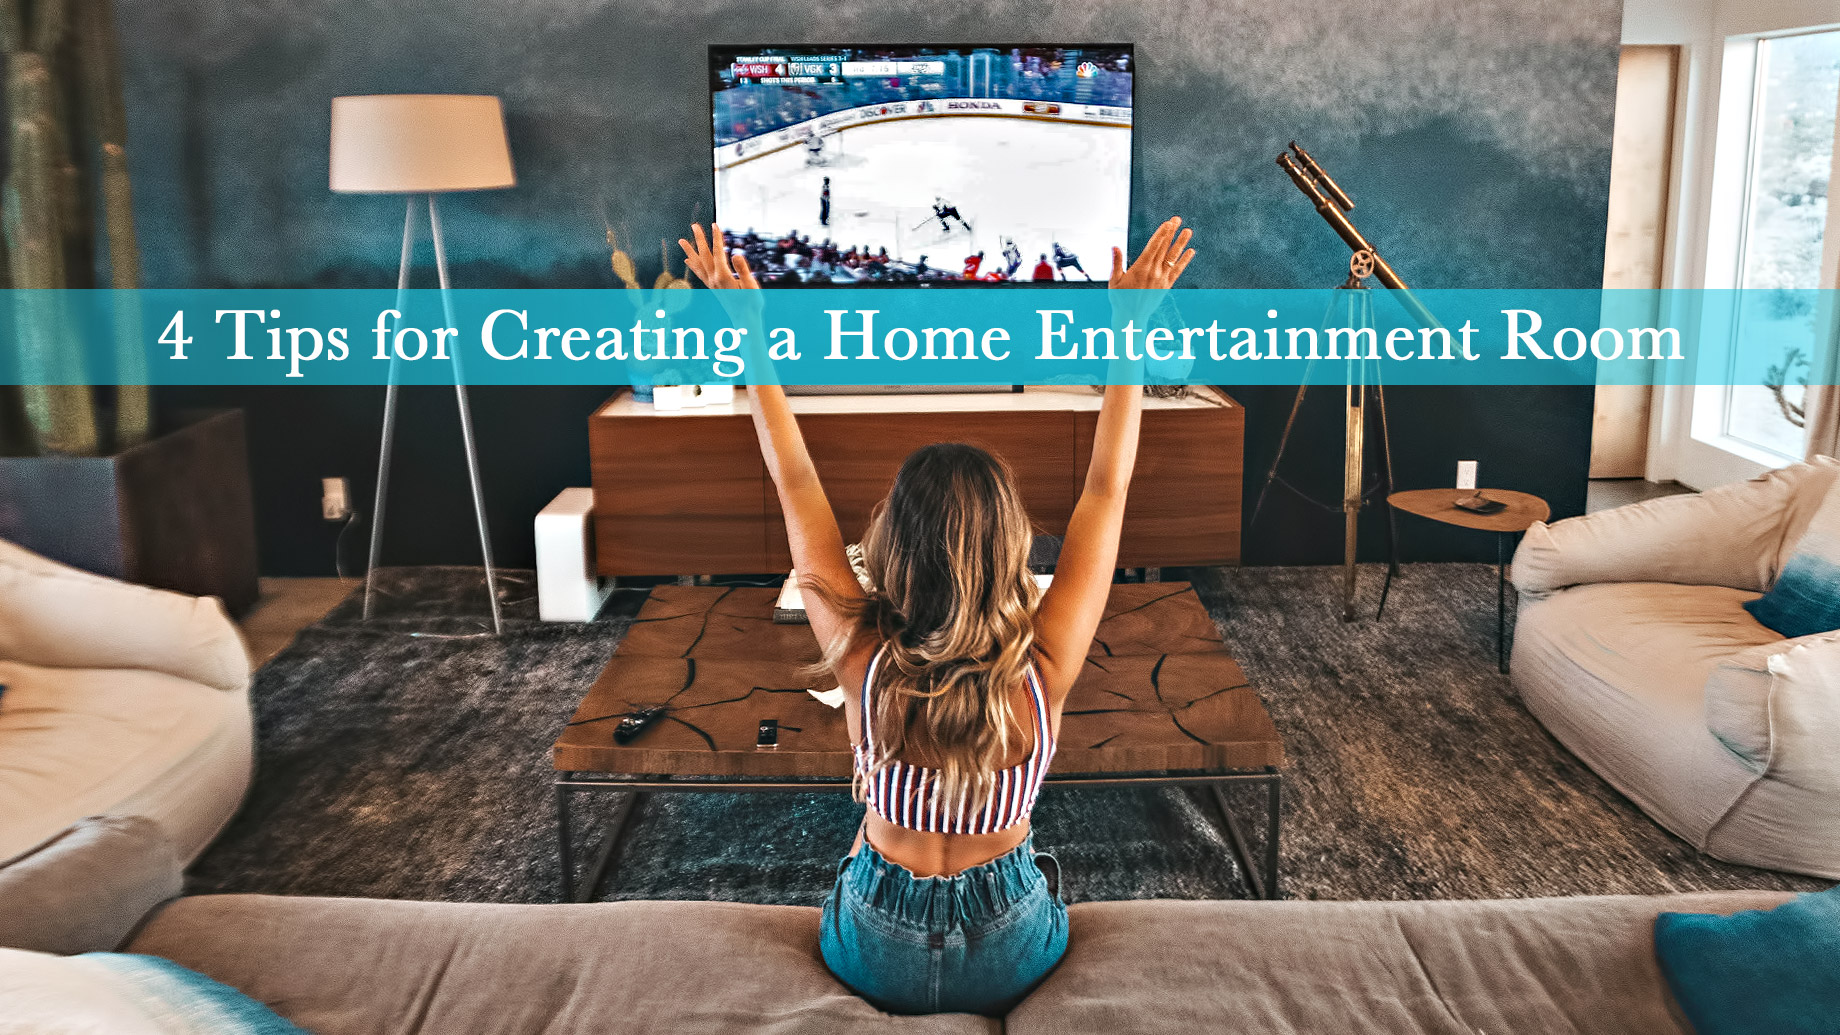 4 Tips for Creating a Home Entertainment Room